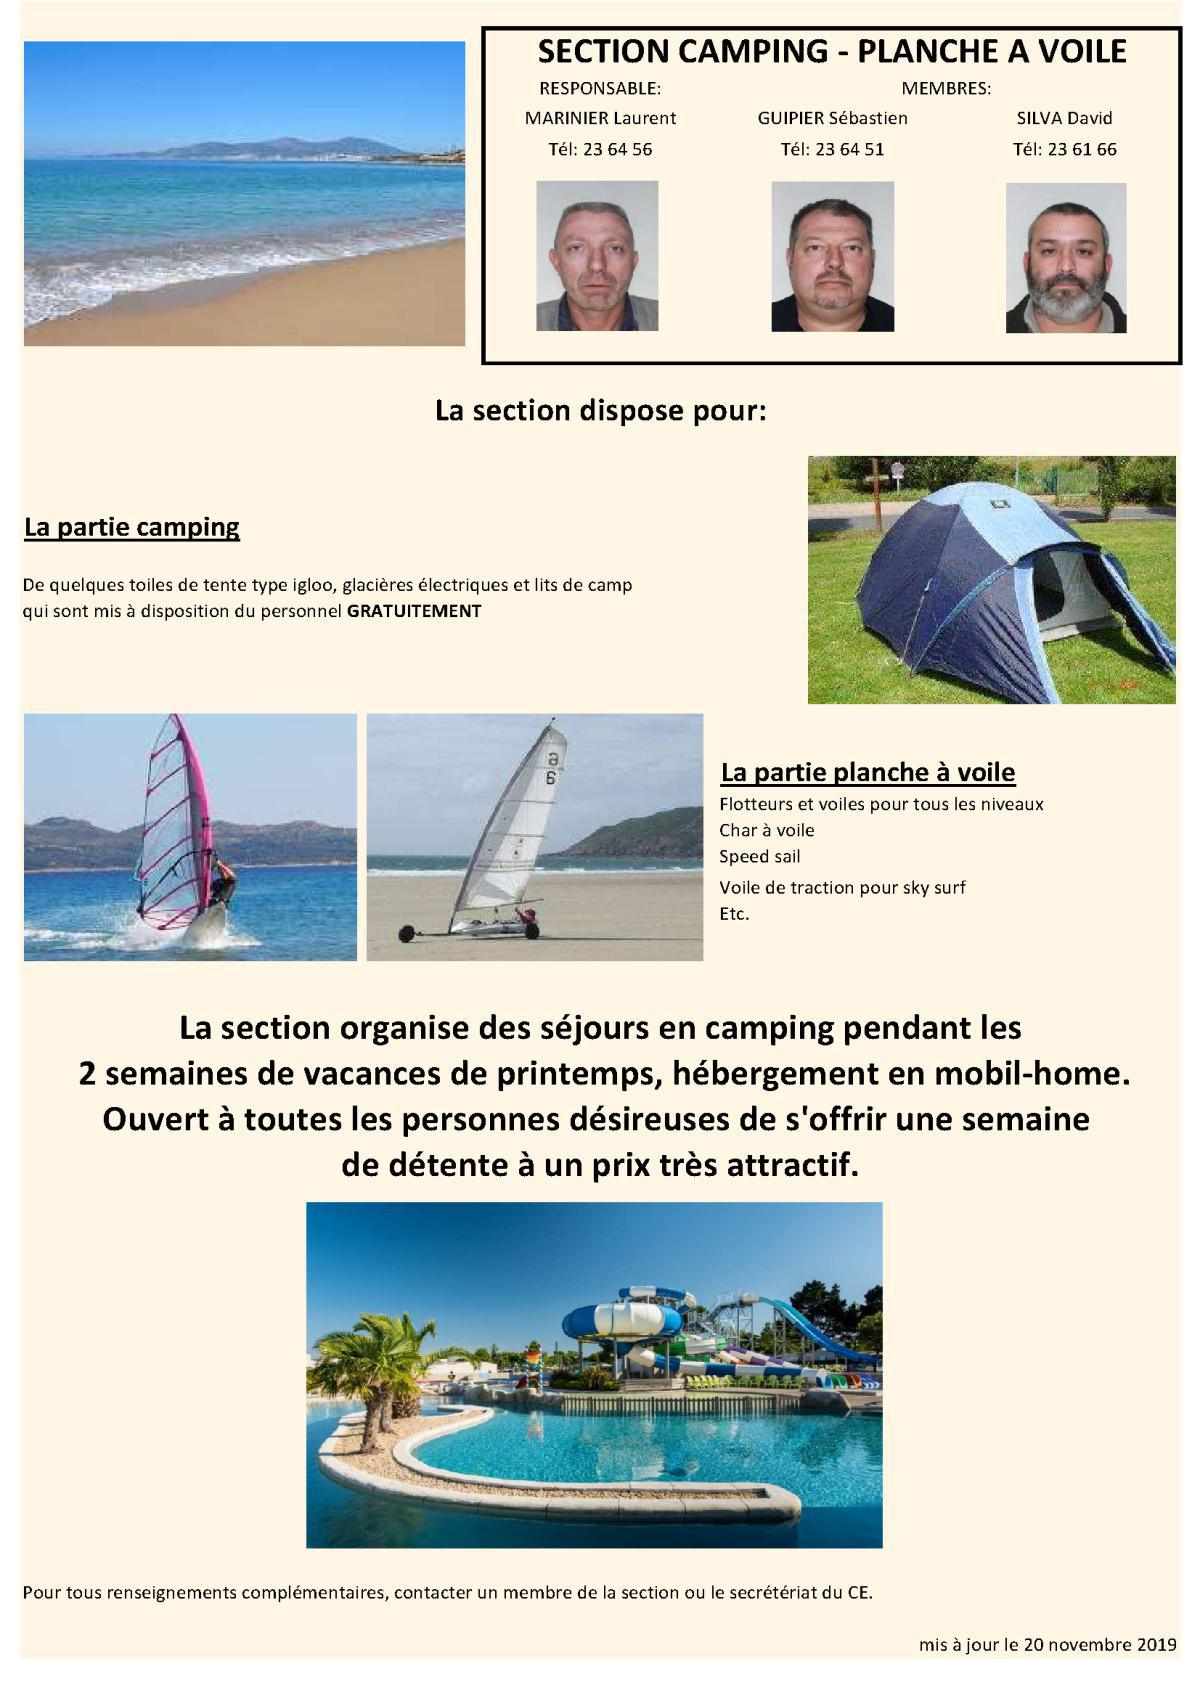 SECTION CAMPING - PLANCHE A VOILE